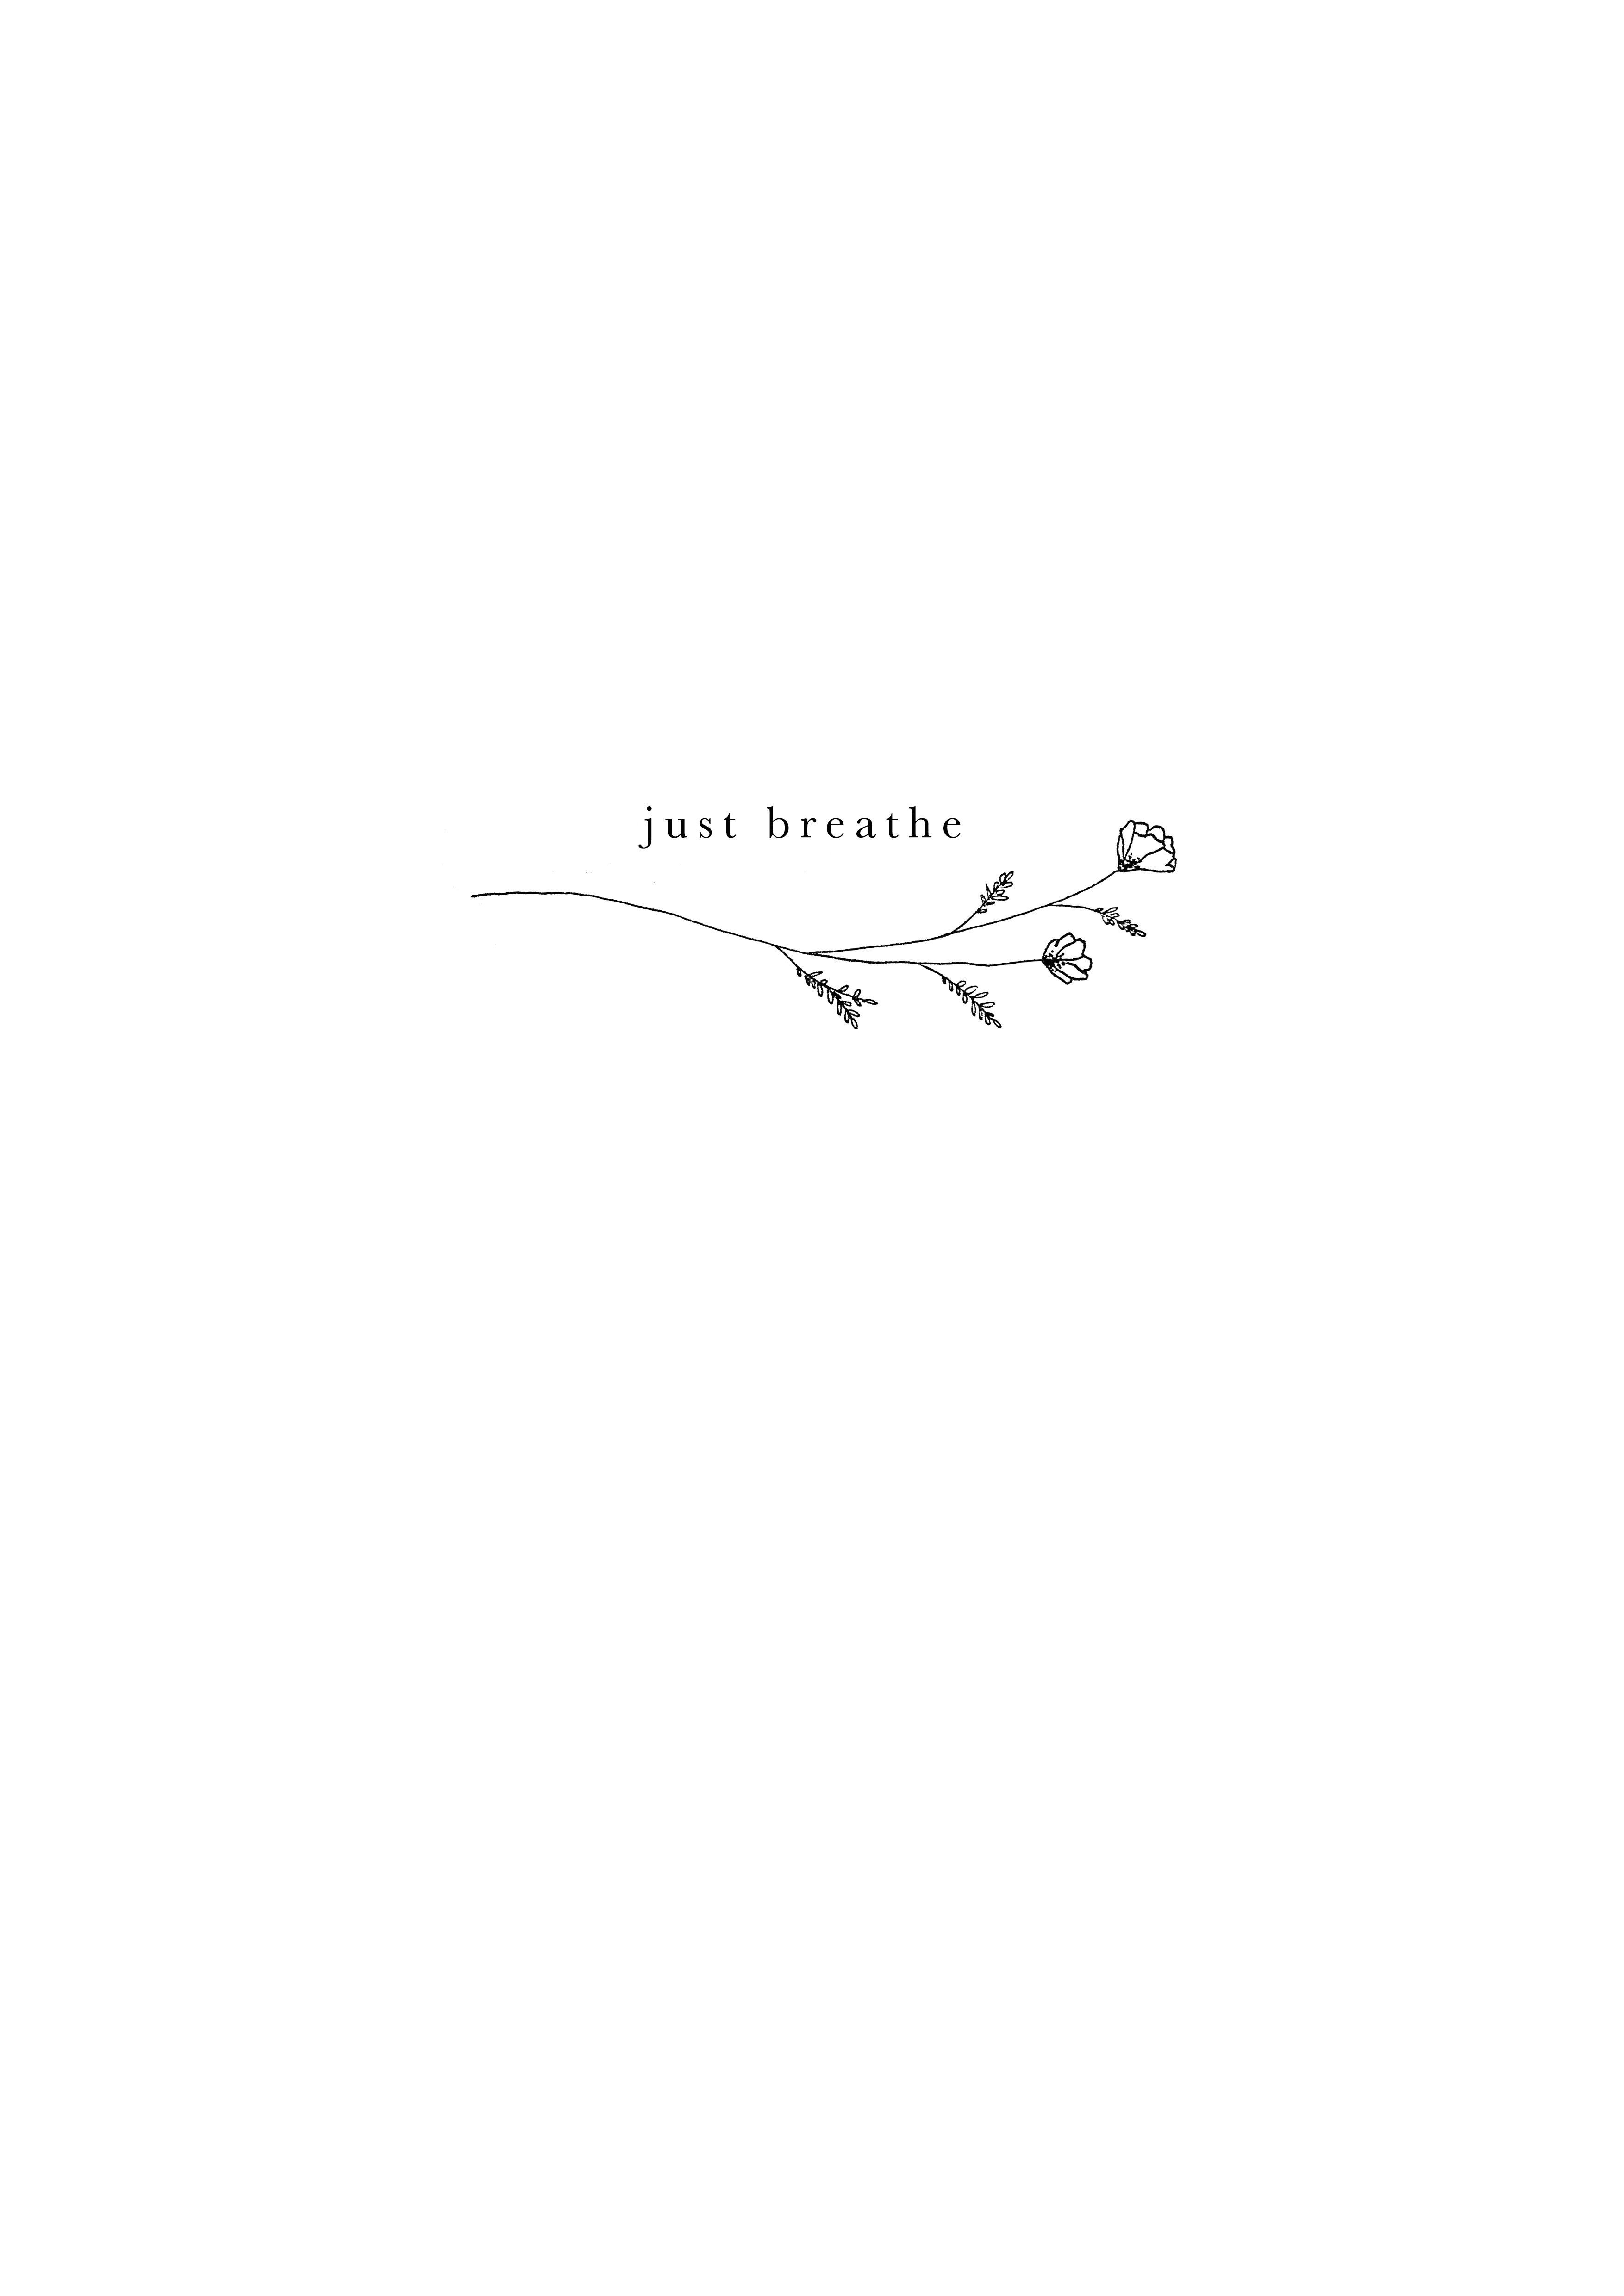 Pin On Ink In 2020 Simple Quote Tattoos Breathe Tattoo Word Tattoos